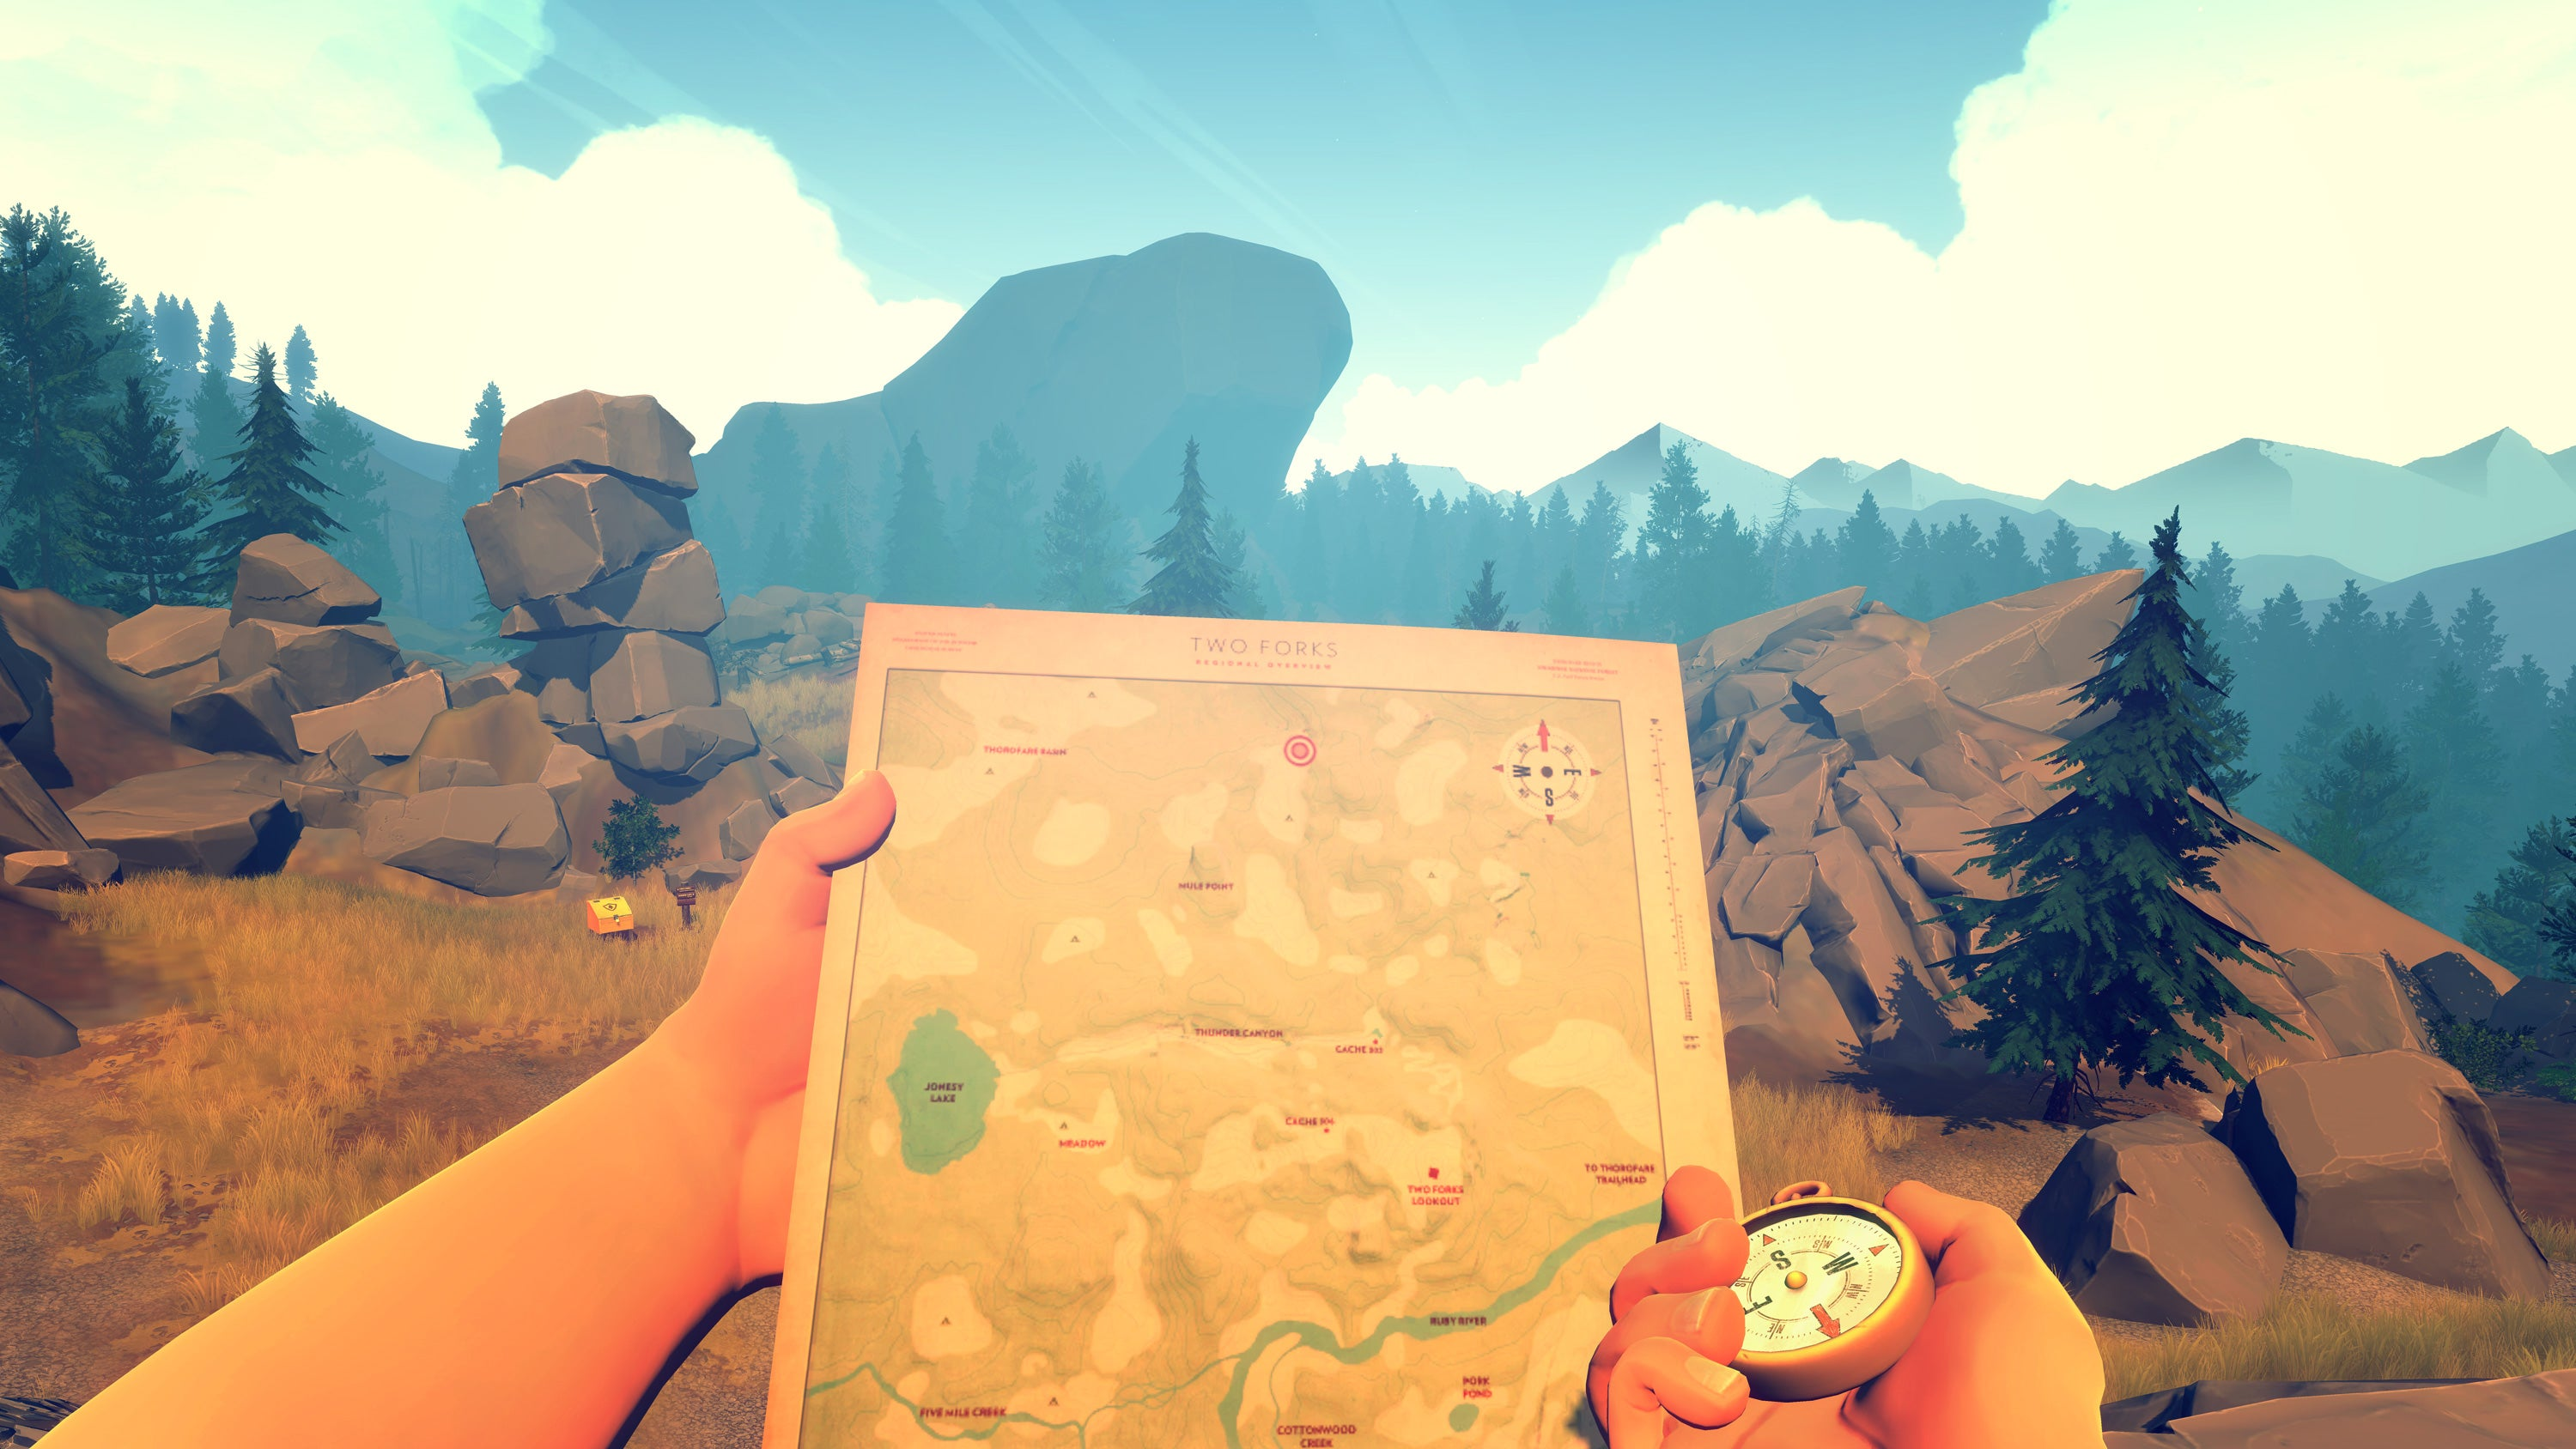 campo-santo feature firewatch in-the-valley-of-the-gods sales valve